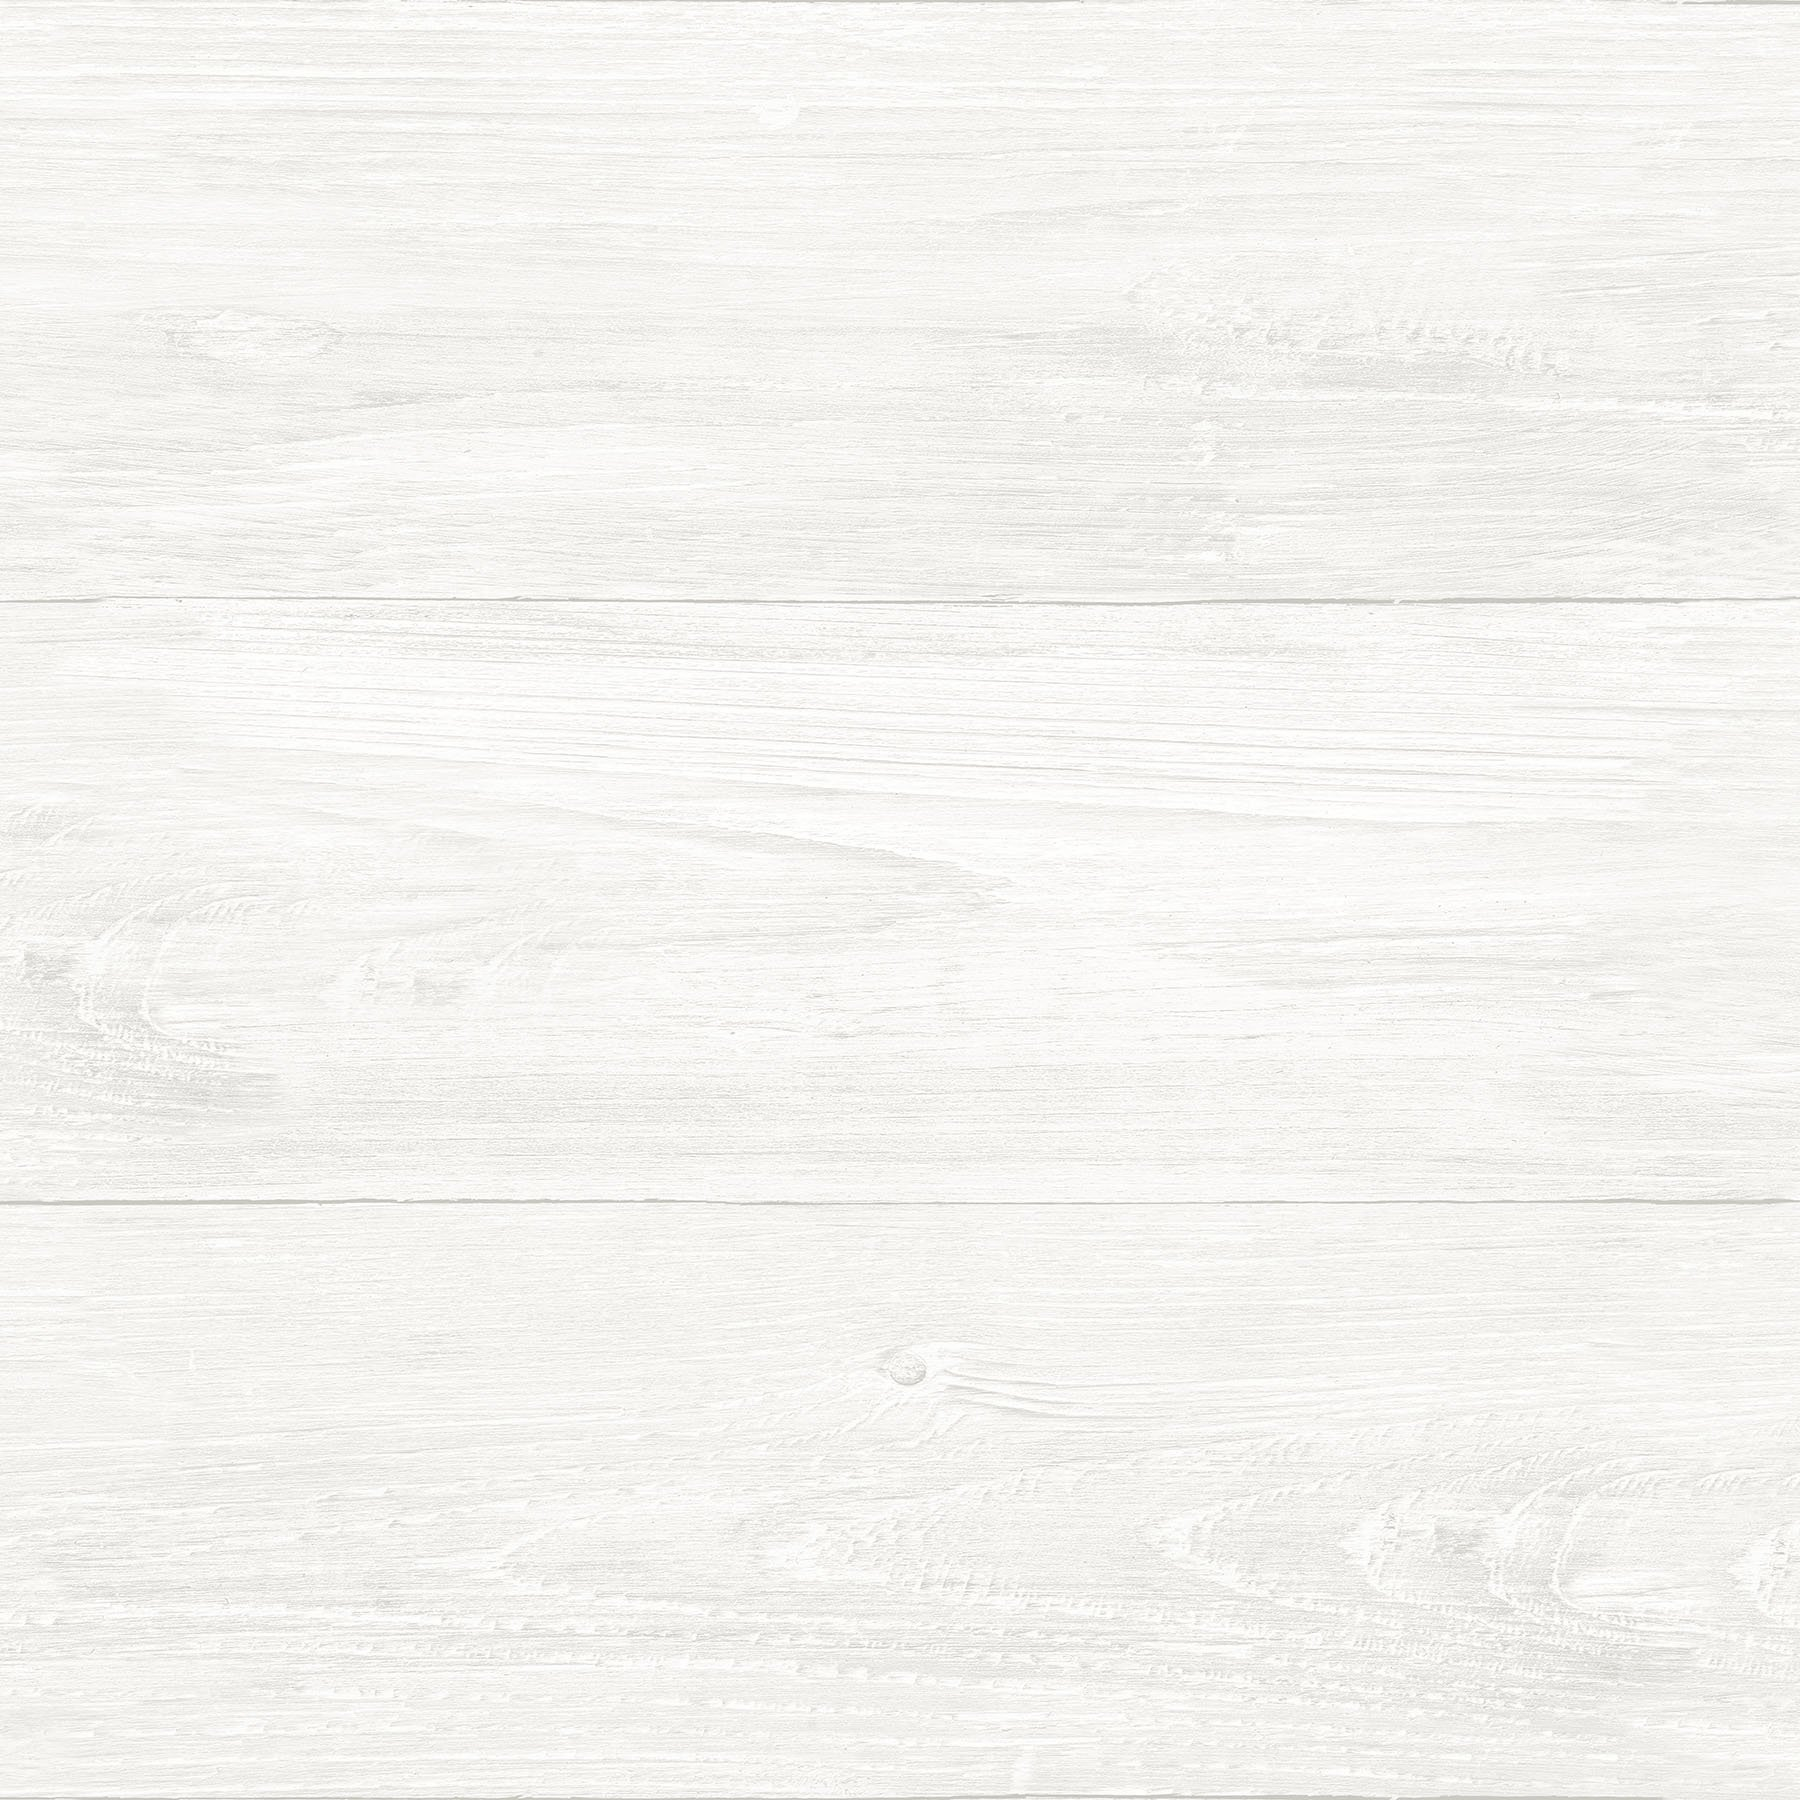 NuWallpaper NU3129 Reclaimed Shiplap Peel & Stick Wallpaper, White/Off-White by NuWallpaper